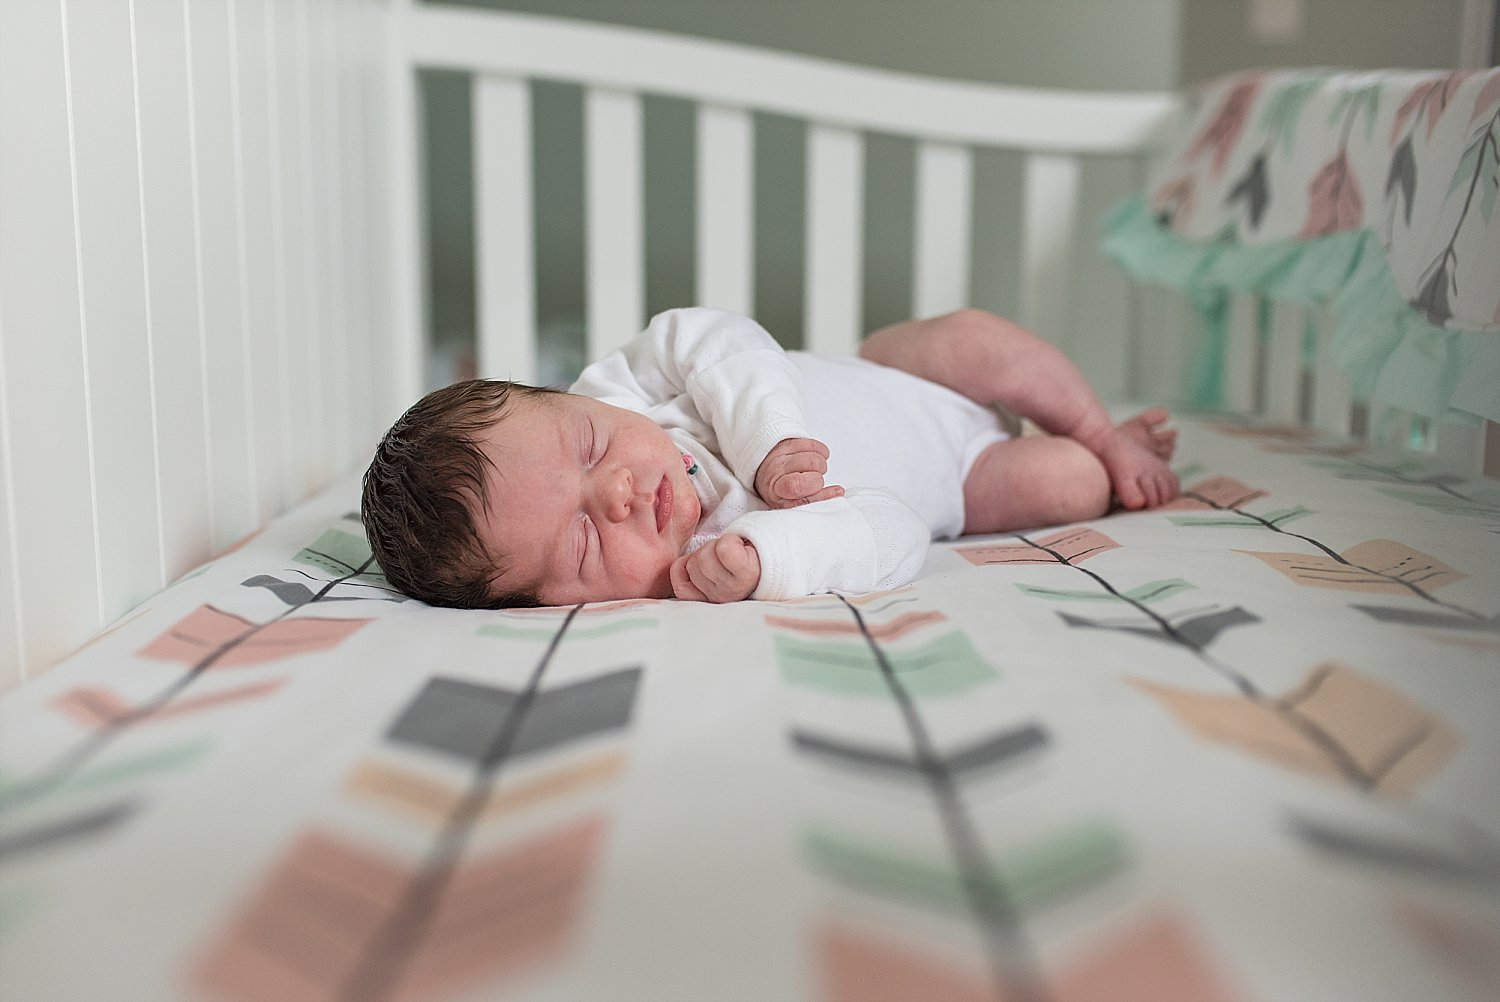 at home newborn photography session in hartford county. baby sleeping in crib